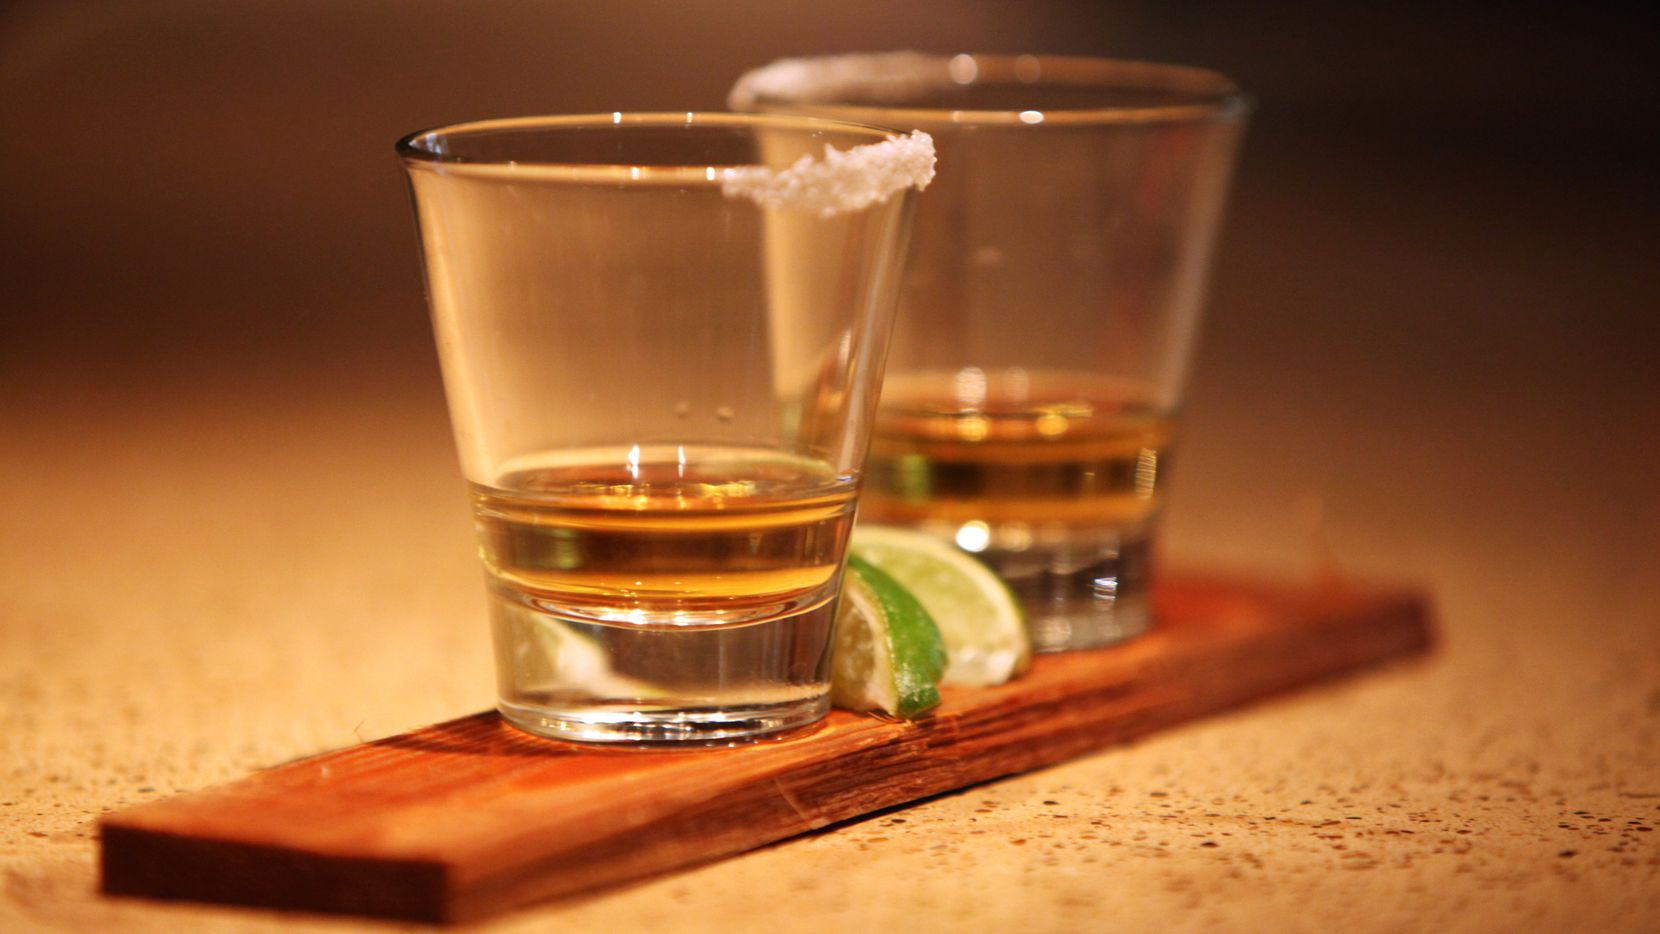 National Tequila Day is celebrated annually on July 24.